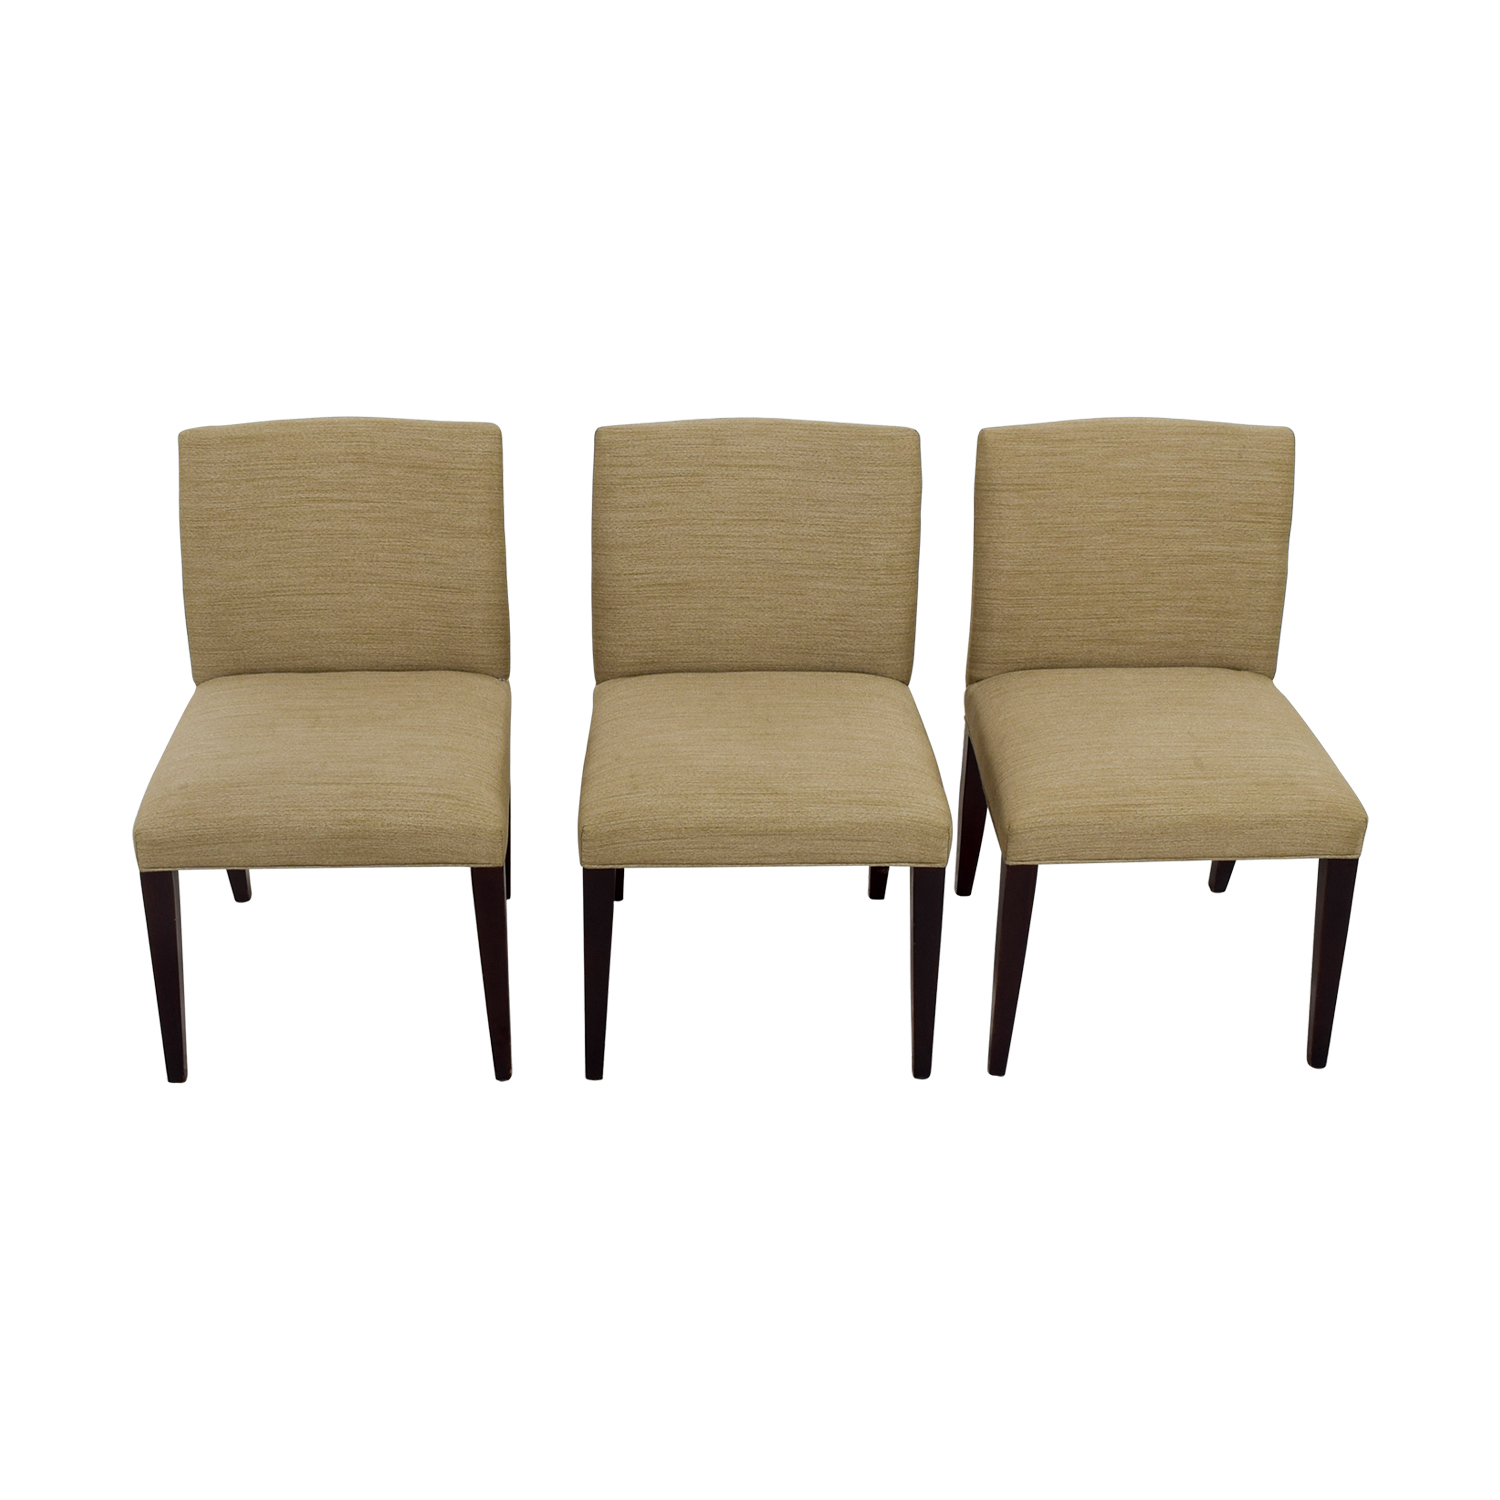 Room & Board Marie Tan Side Chairs / Chairs